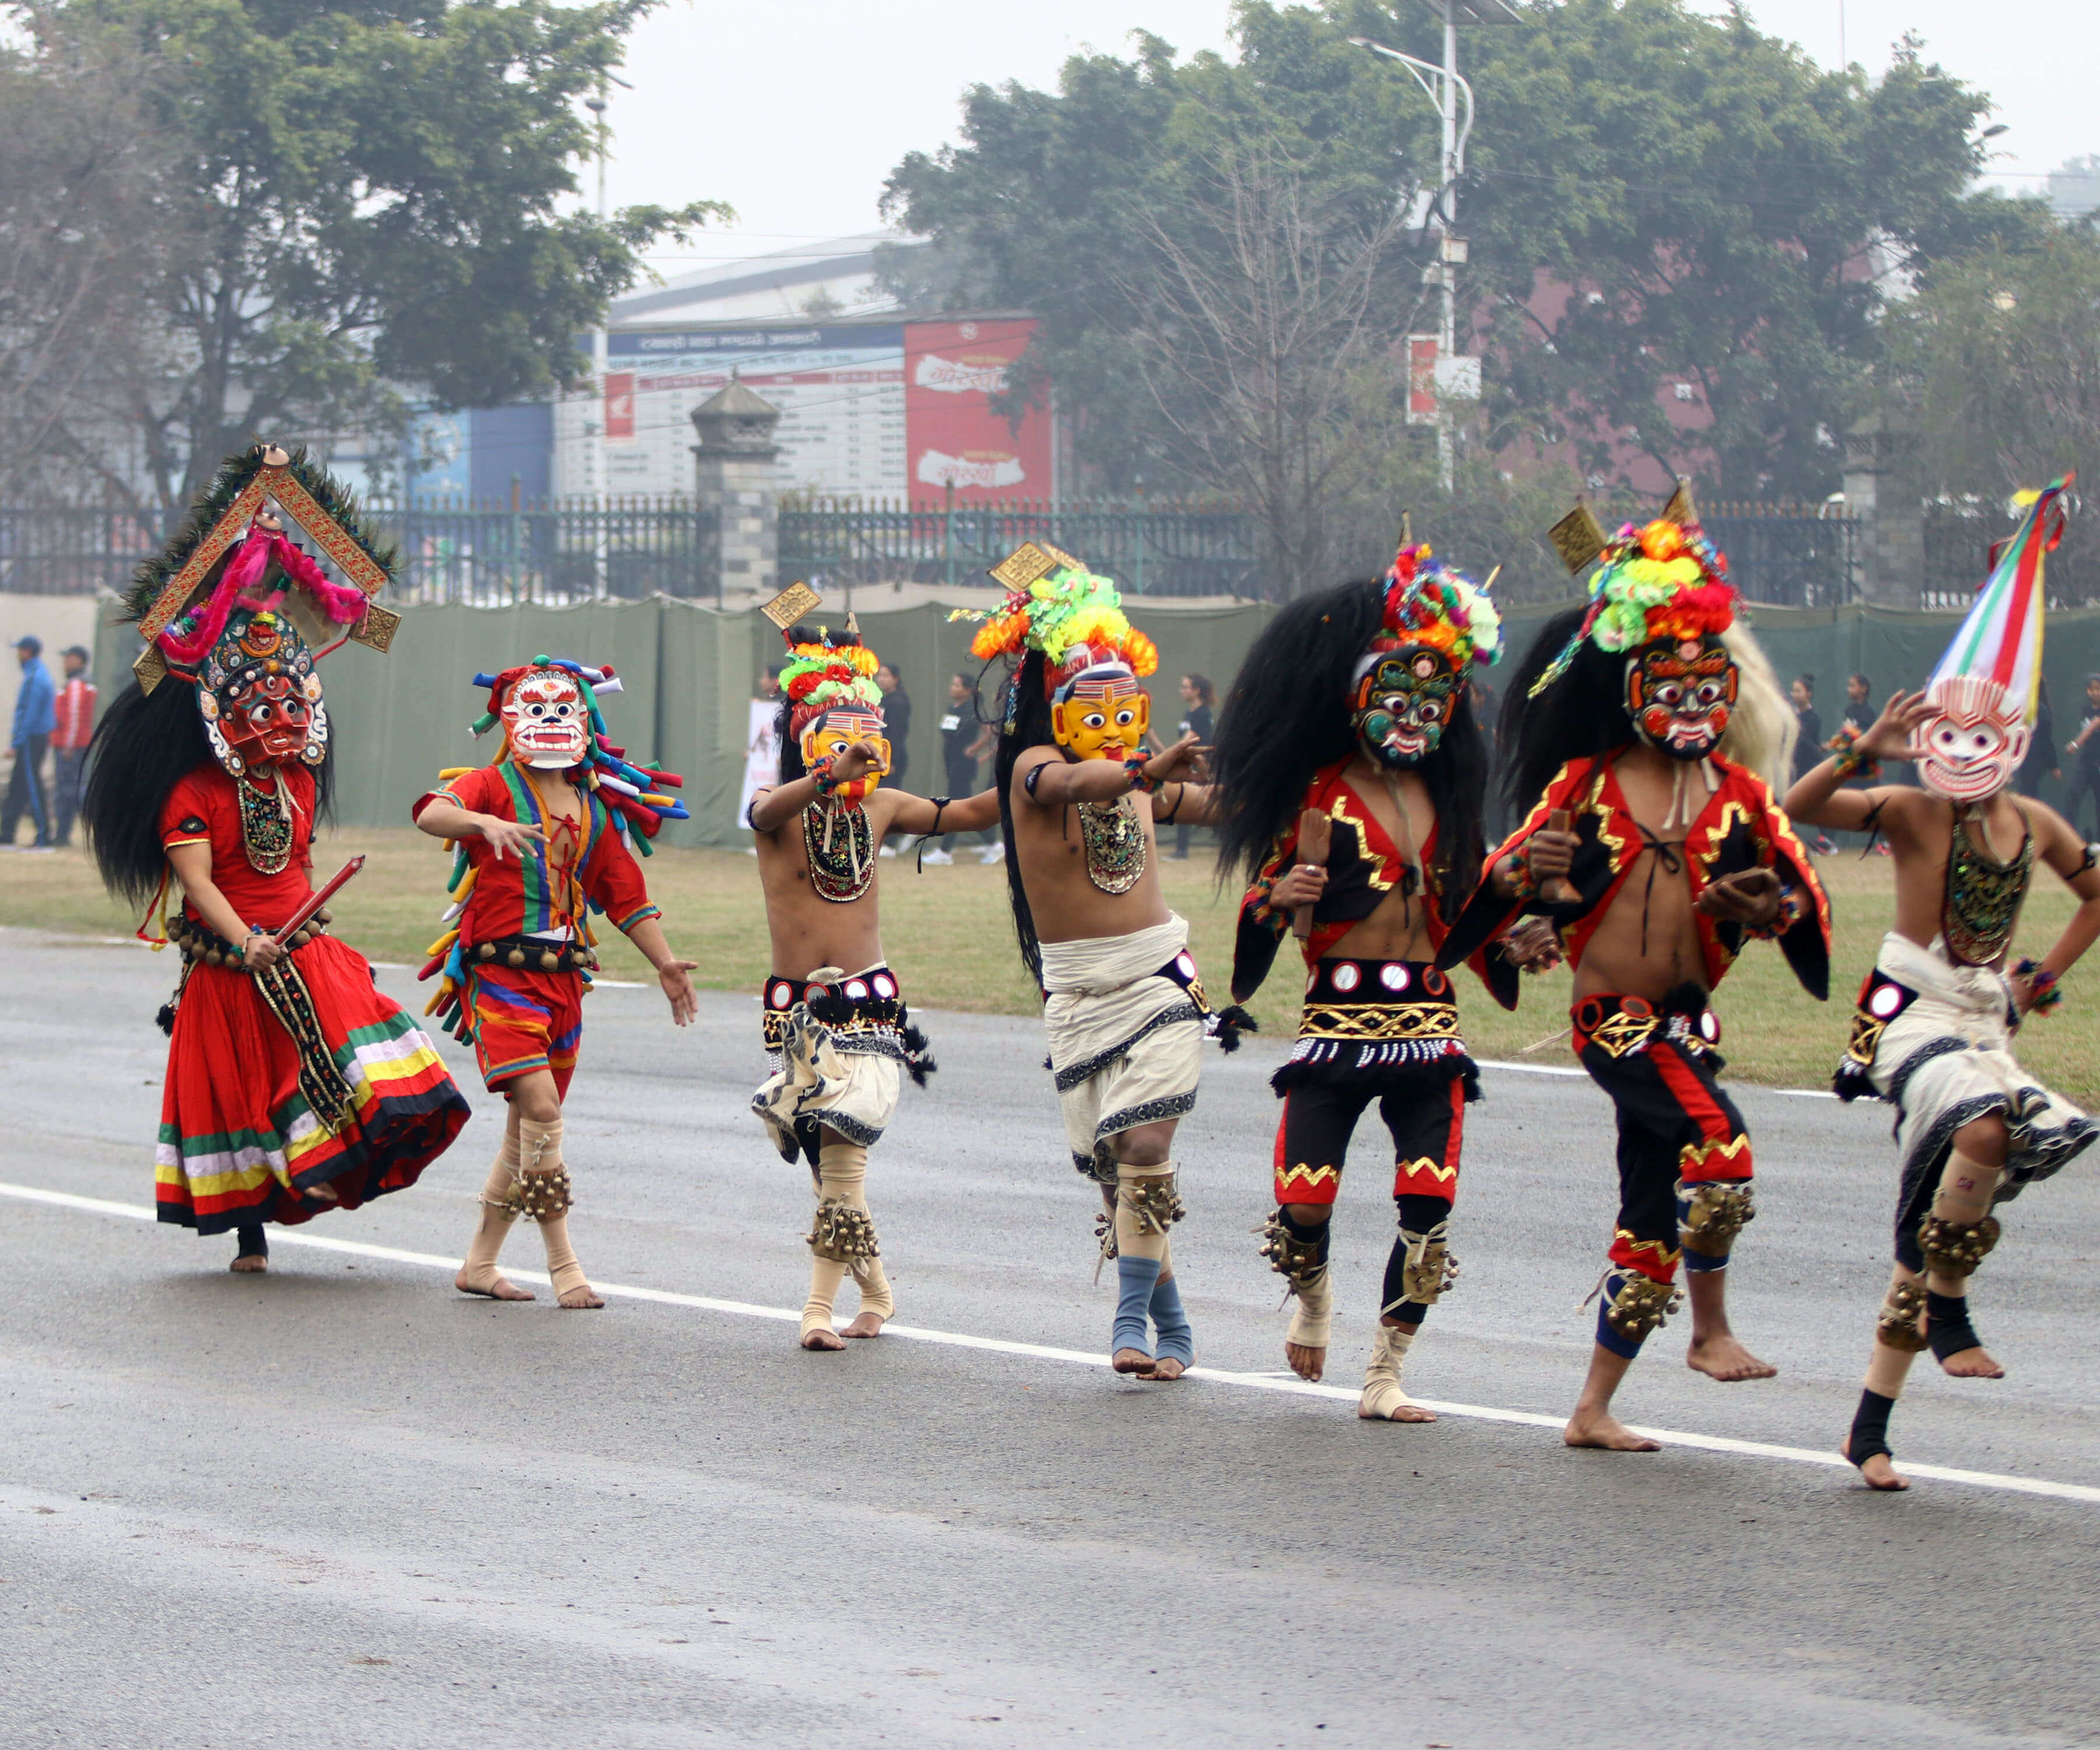 69th National Democracy Day celebrated in Tundikhel of Kathmandu with cultural processions.